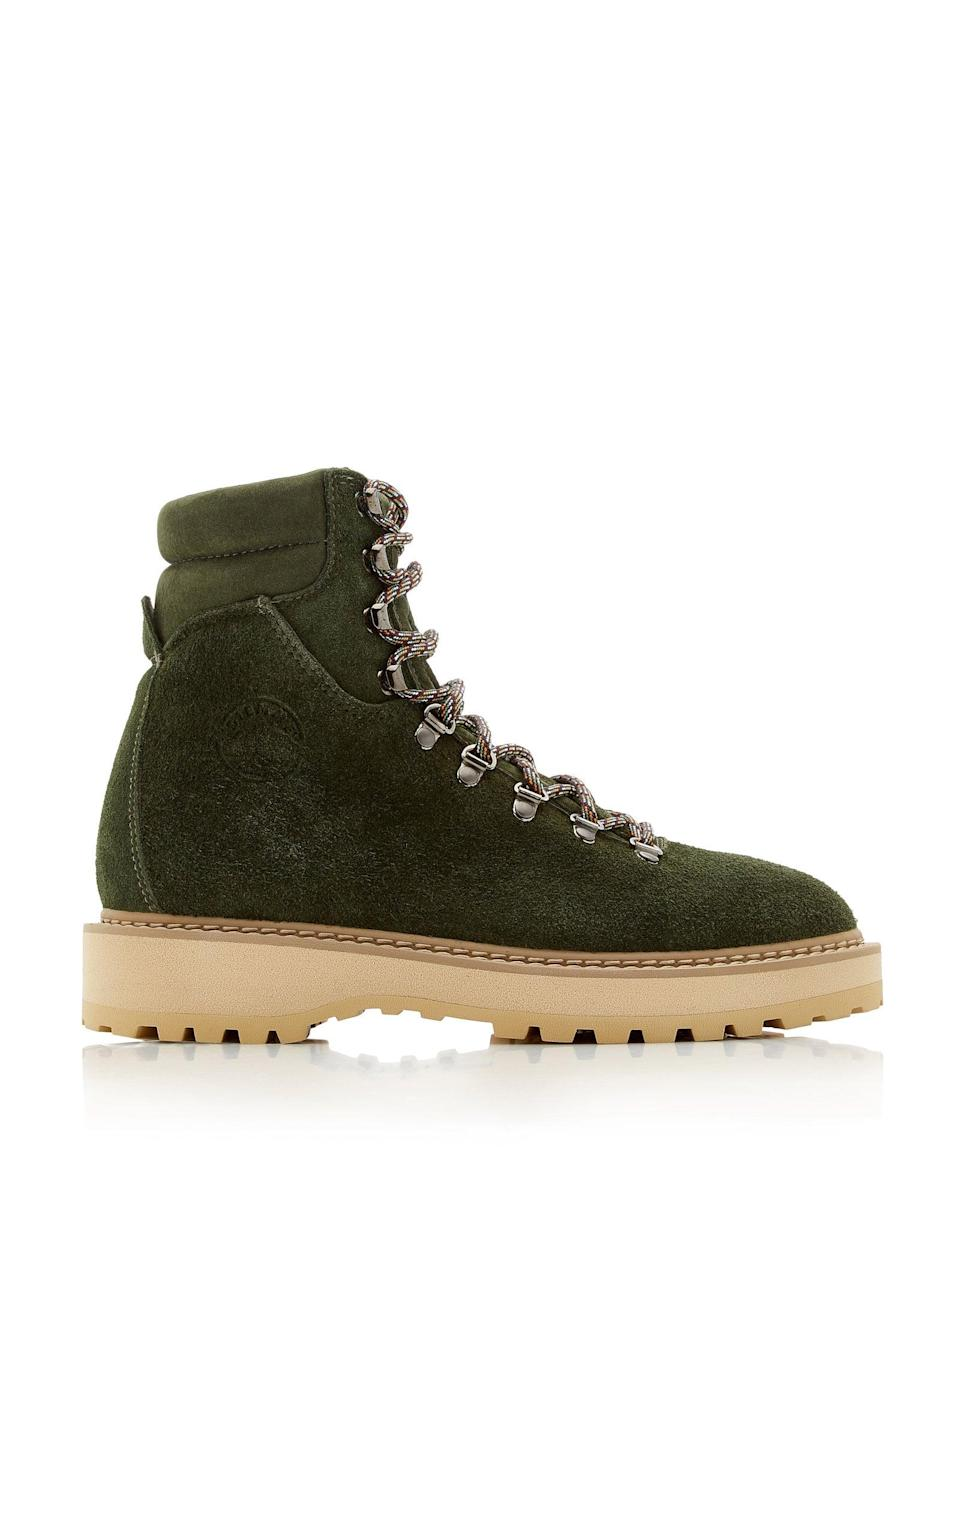 <p>Switch it up with these cool <span>Diemme Monfumo Suede Boots</span> ($439). The dark green suede adds a little something extra, and they'll look great with jeans.</p>